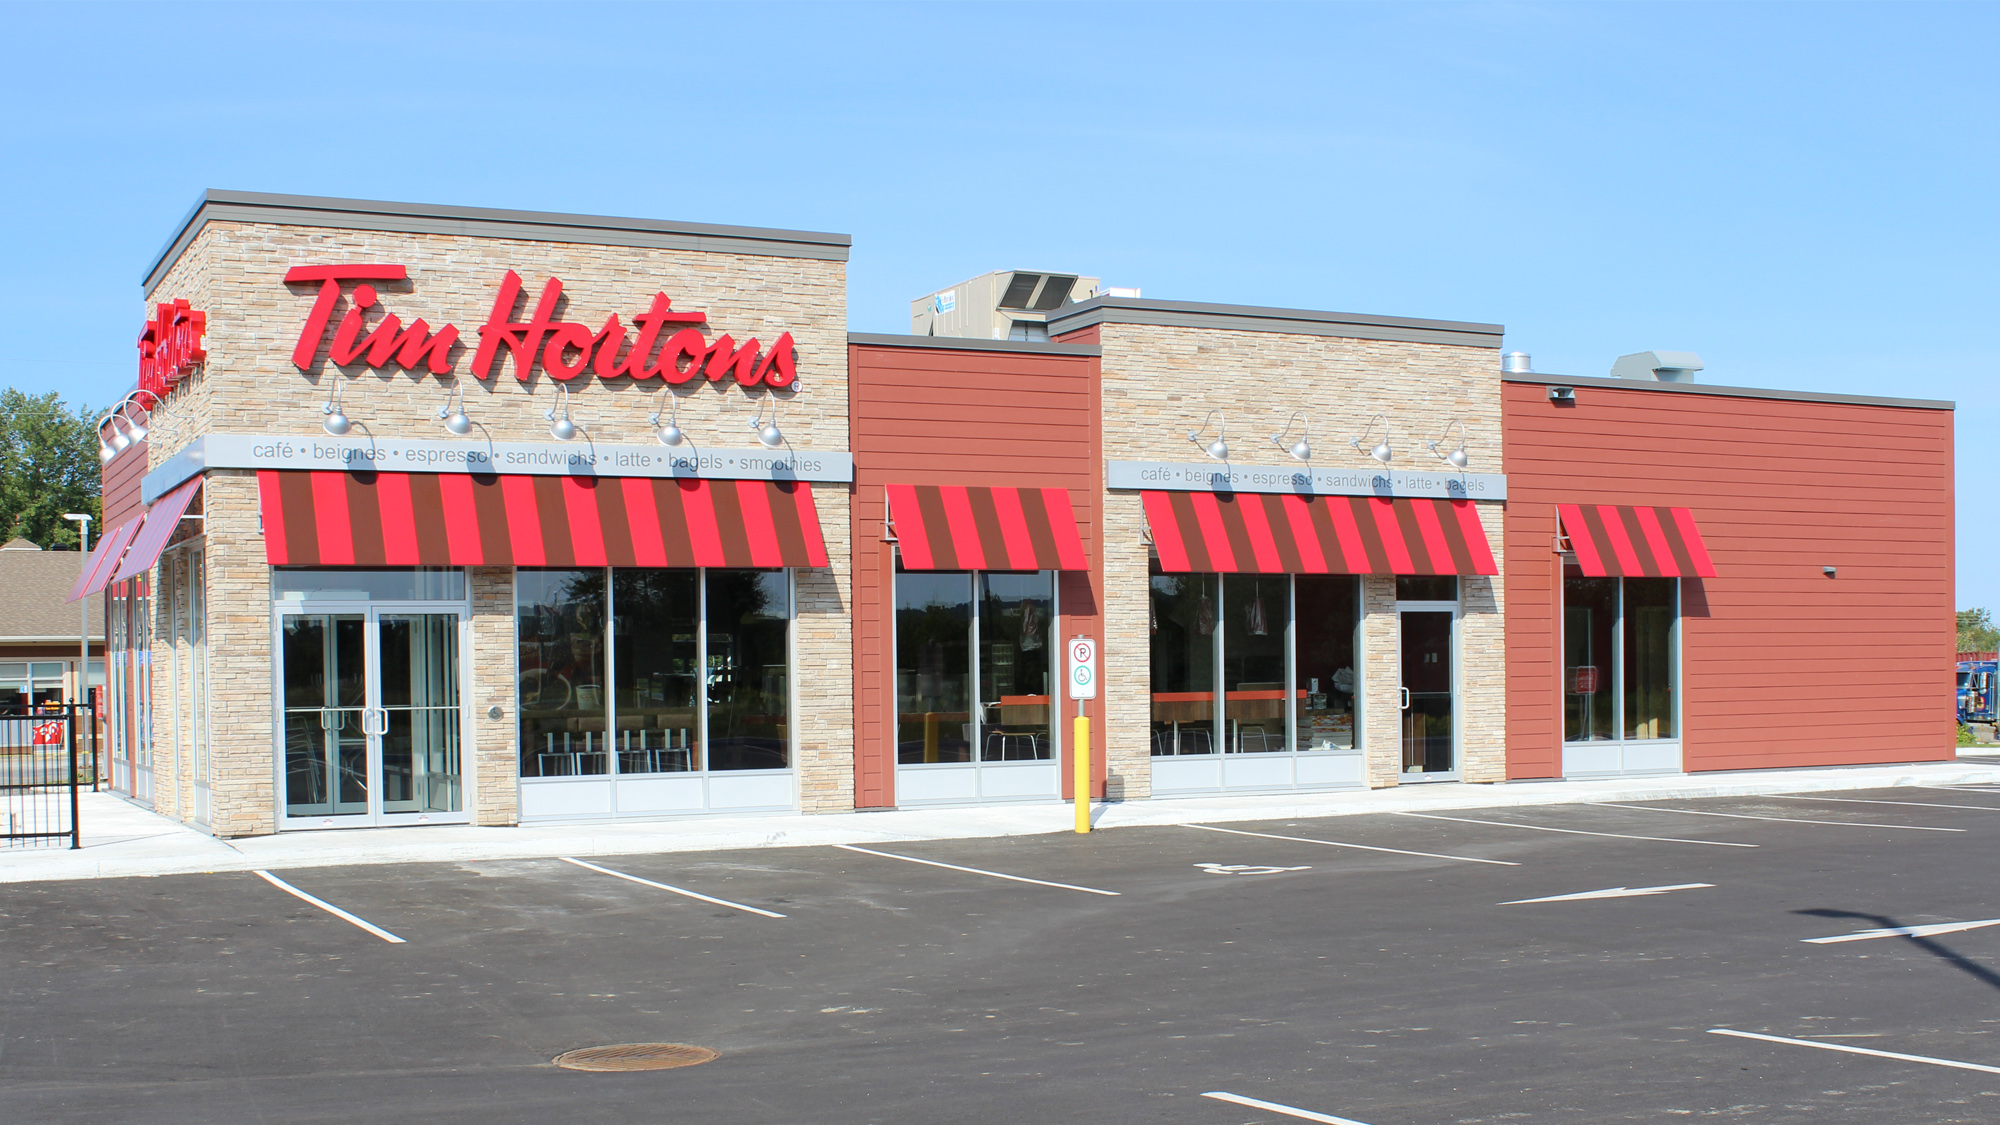 Tim hortons construction bertrand dionne for Club piscine terrebonne liquidation